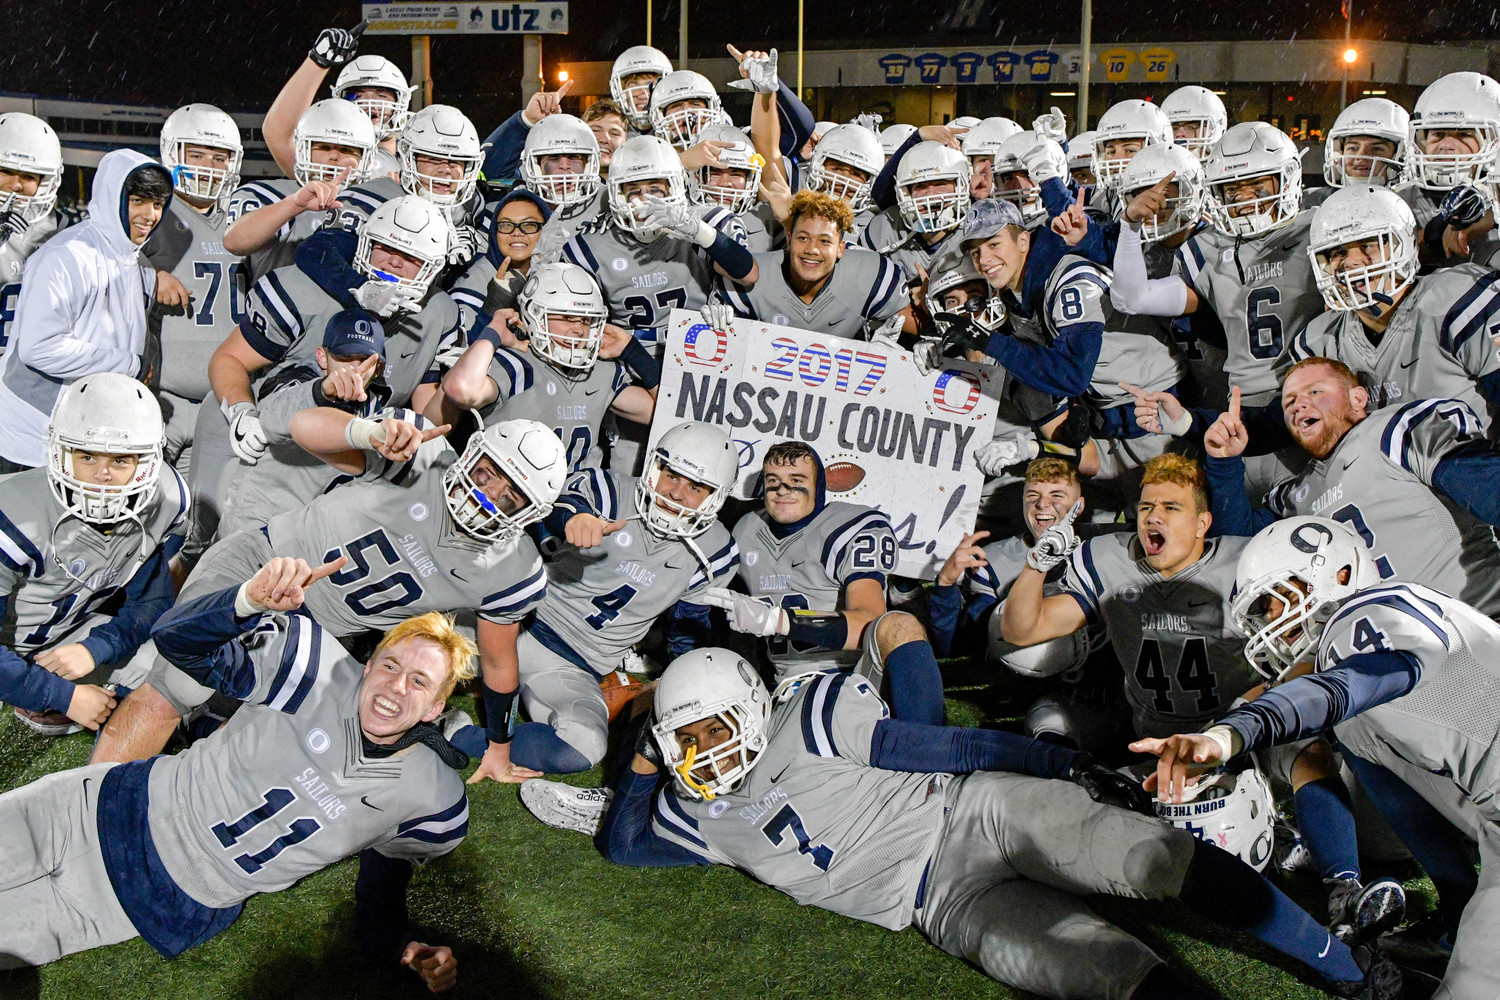 Oceanside blanked Freeport, 17-0, to capture its first Nassau County football title since 1977.